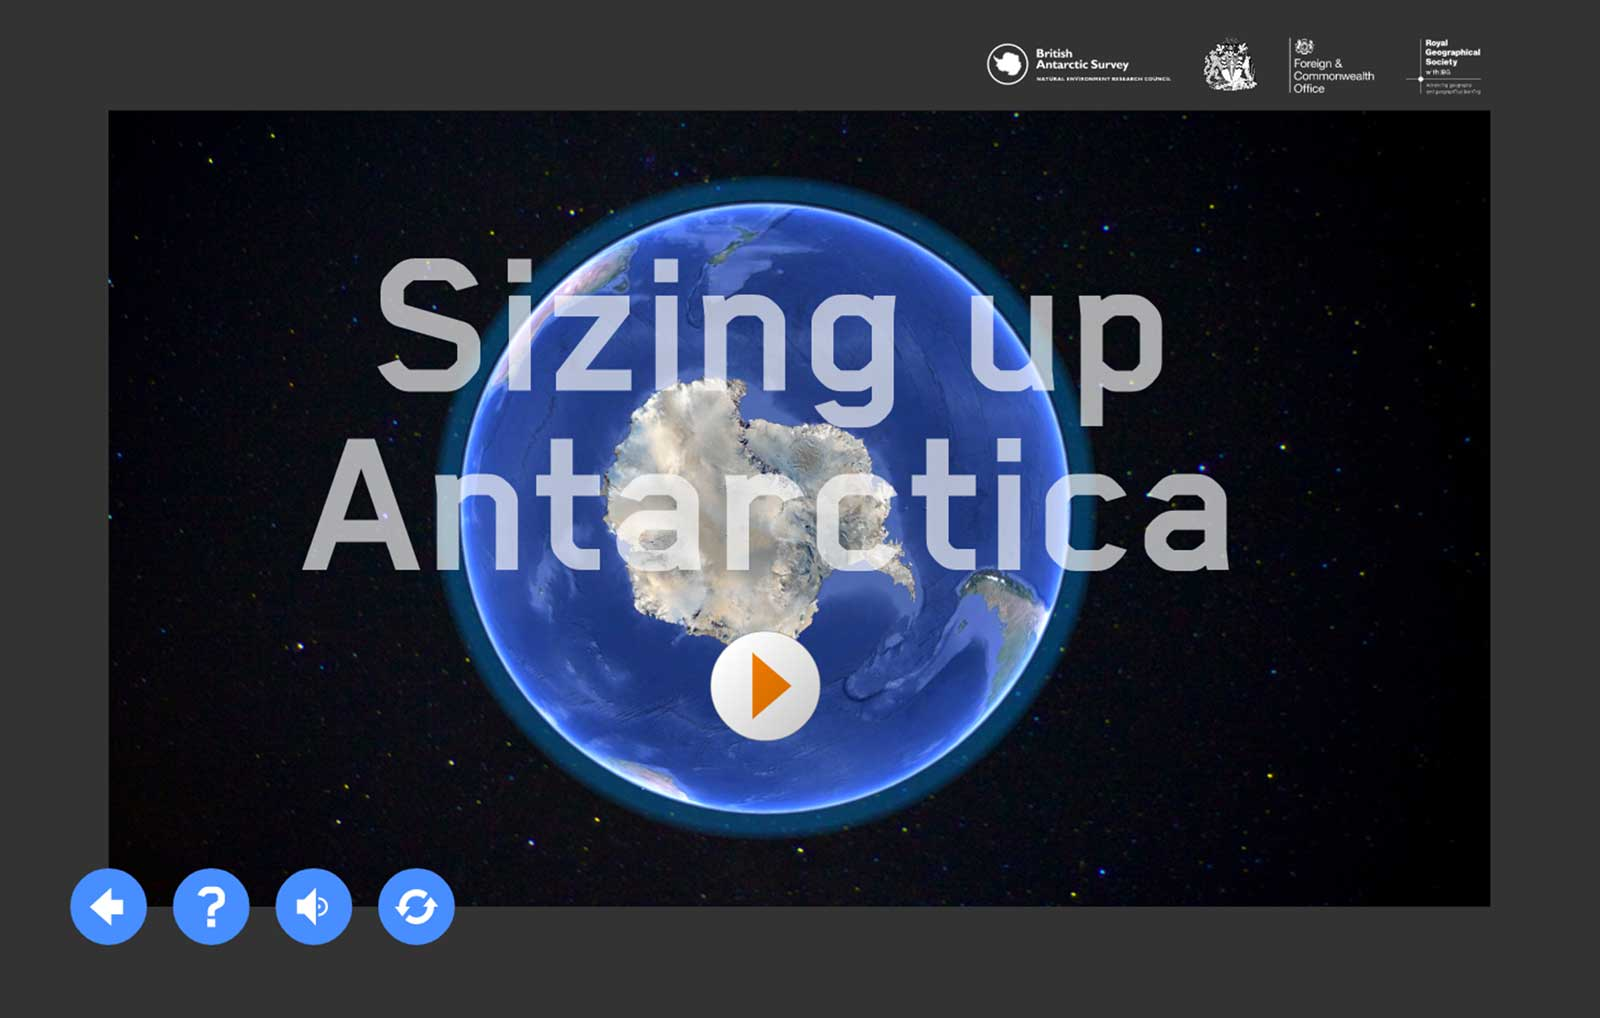 Sizing up Antarctica activity intro screen